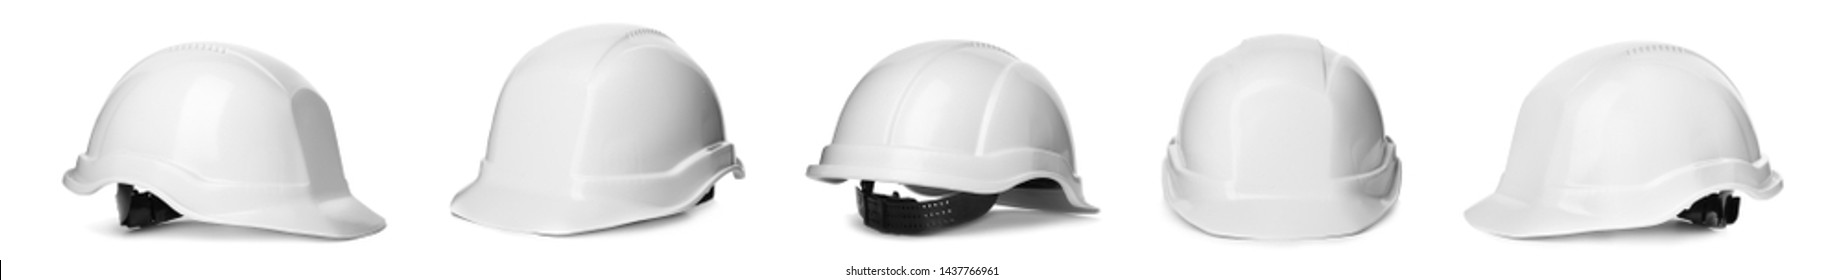 Set of protective hardhats on white background. Banner design